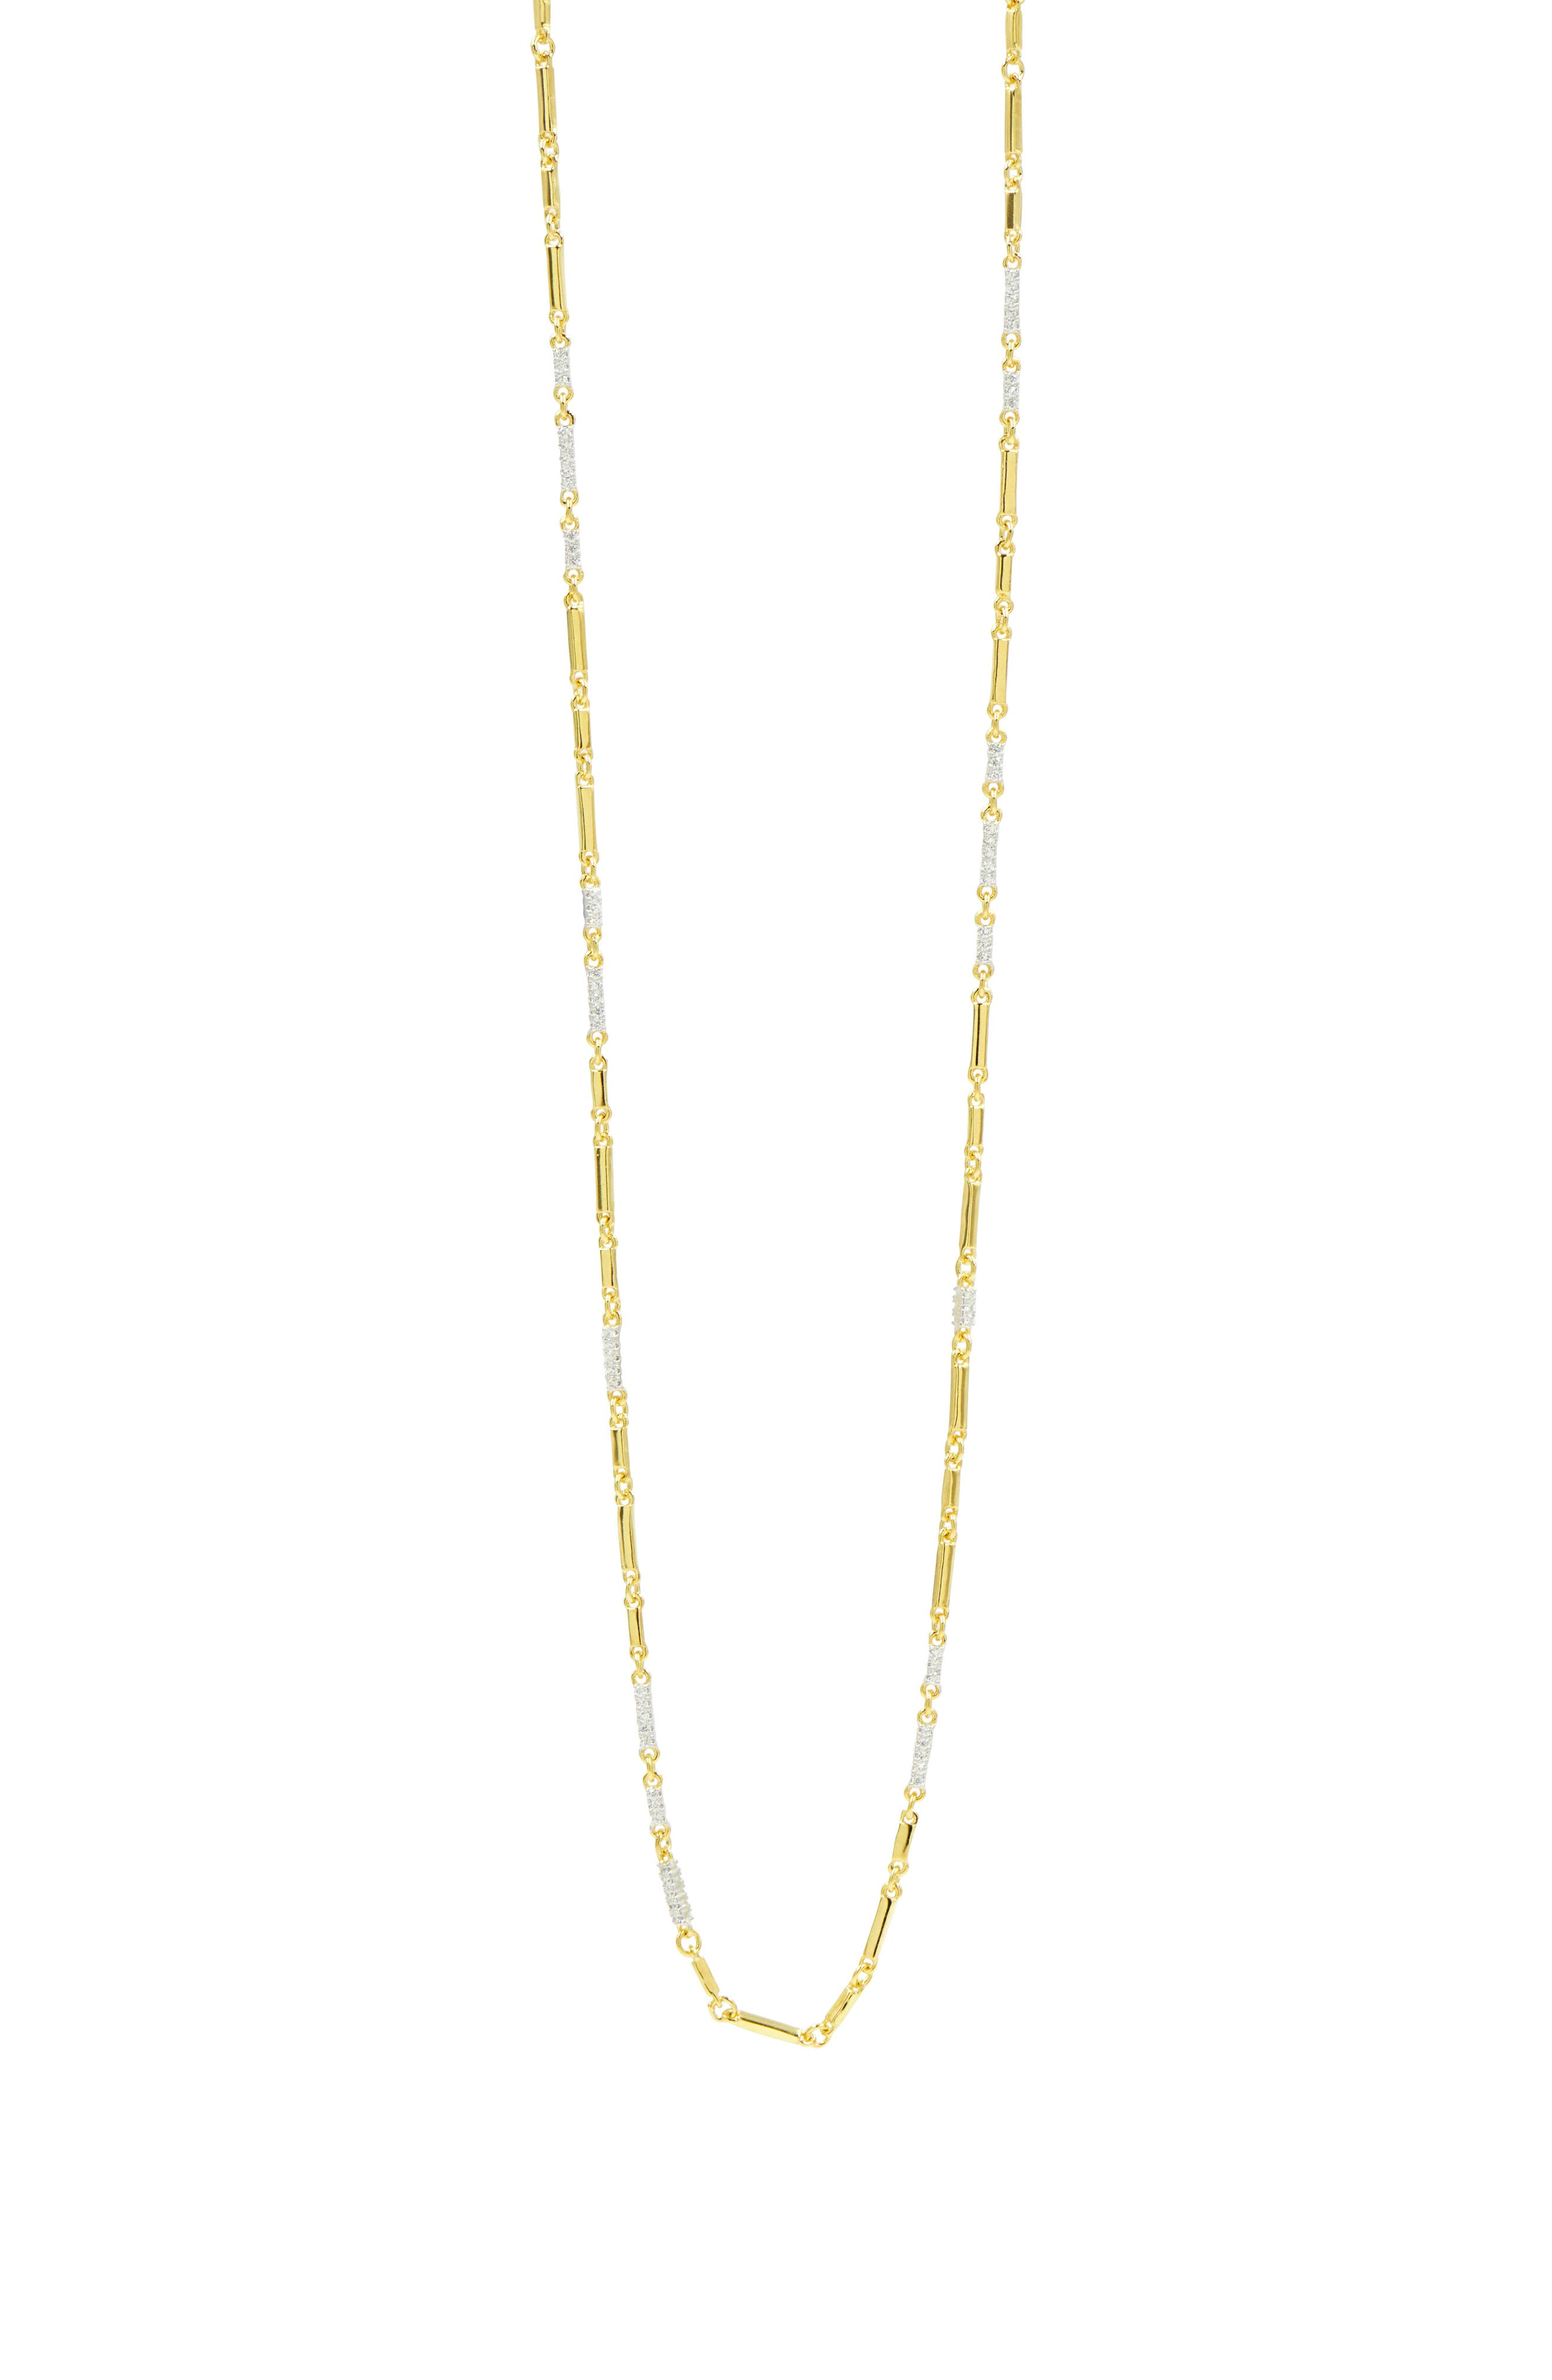 Radiance Cubic Zirconia Chain Necklace,                             Alternate thumbnail 2, color,                             SILVER/ GOLD